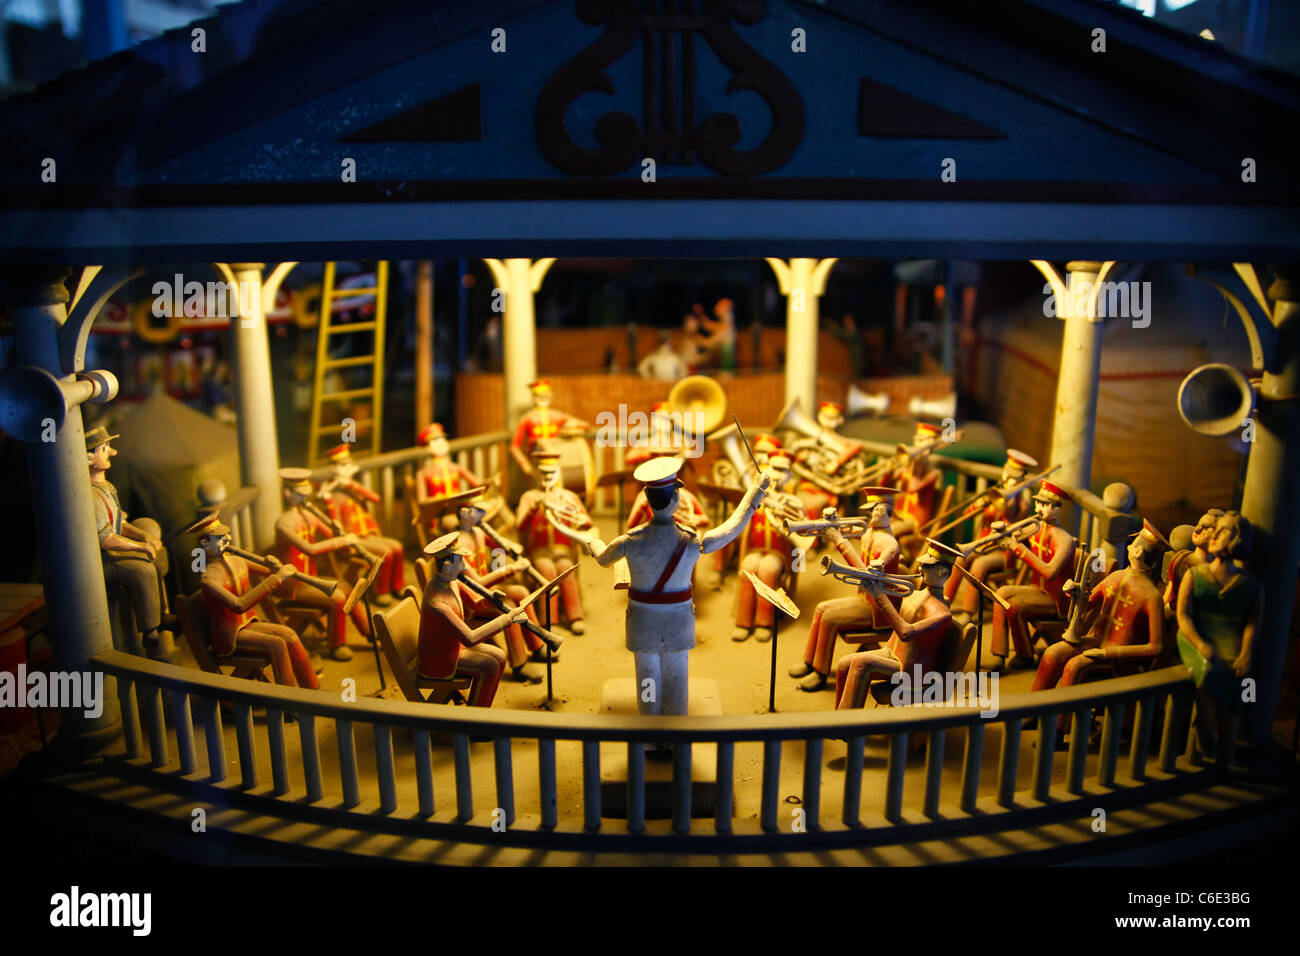 Antique animated wooden band in a bandstand playing music at night. - Stock Image